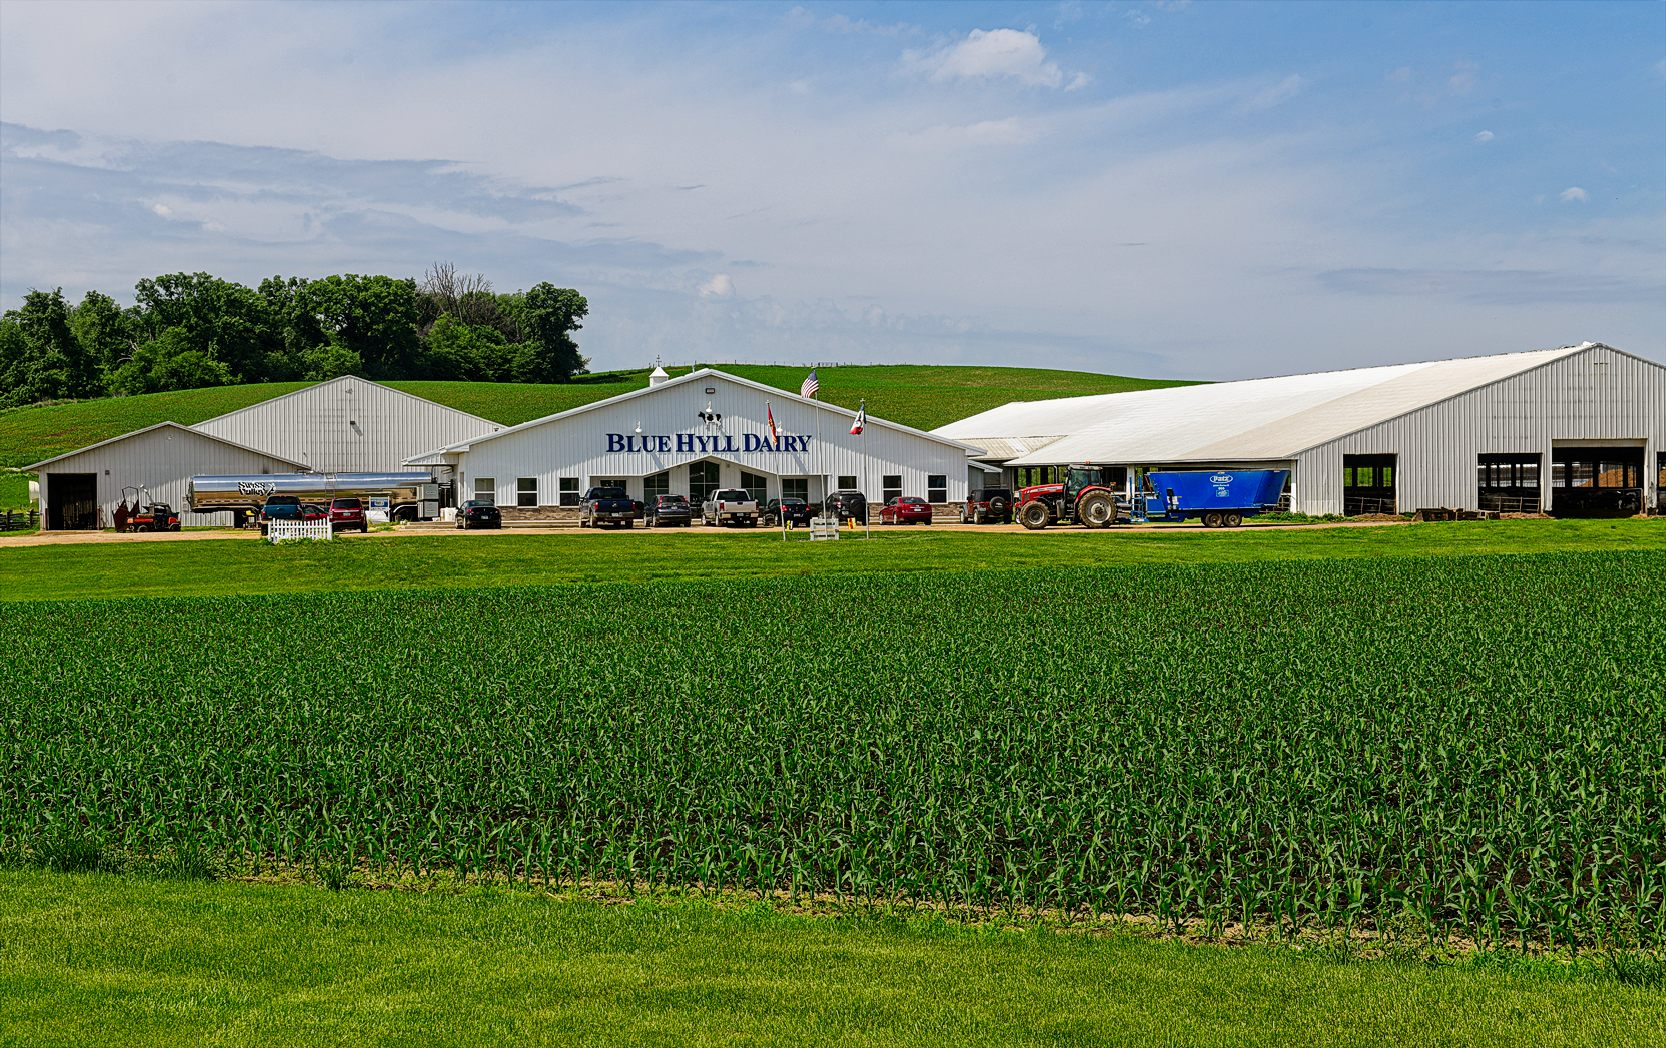 Blue Hyll Dairy is located outside of Clinton, Iowa. It recently completed a $6.5 million expansion featuring a cross-vent barn. Photo credit: Joseph L. Murphy/Iowa Soybean Association